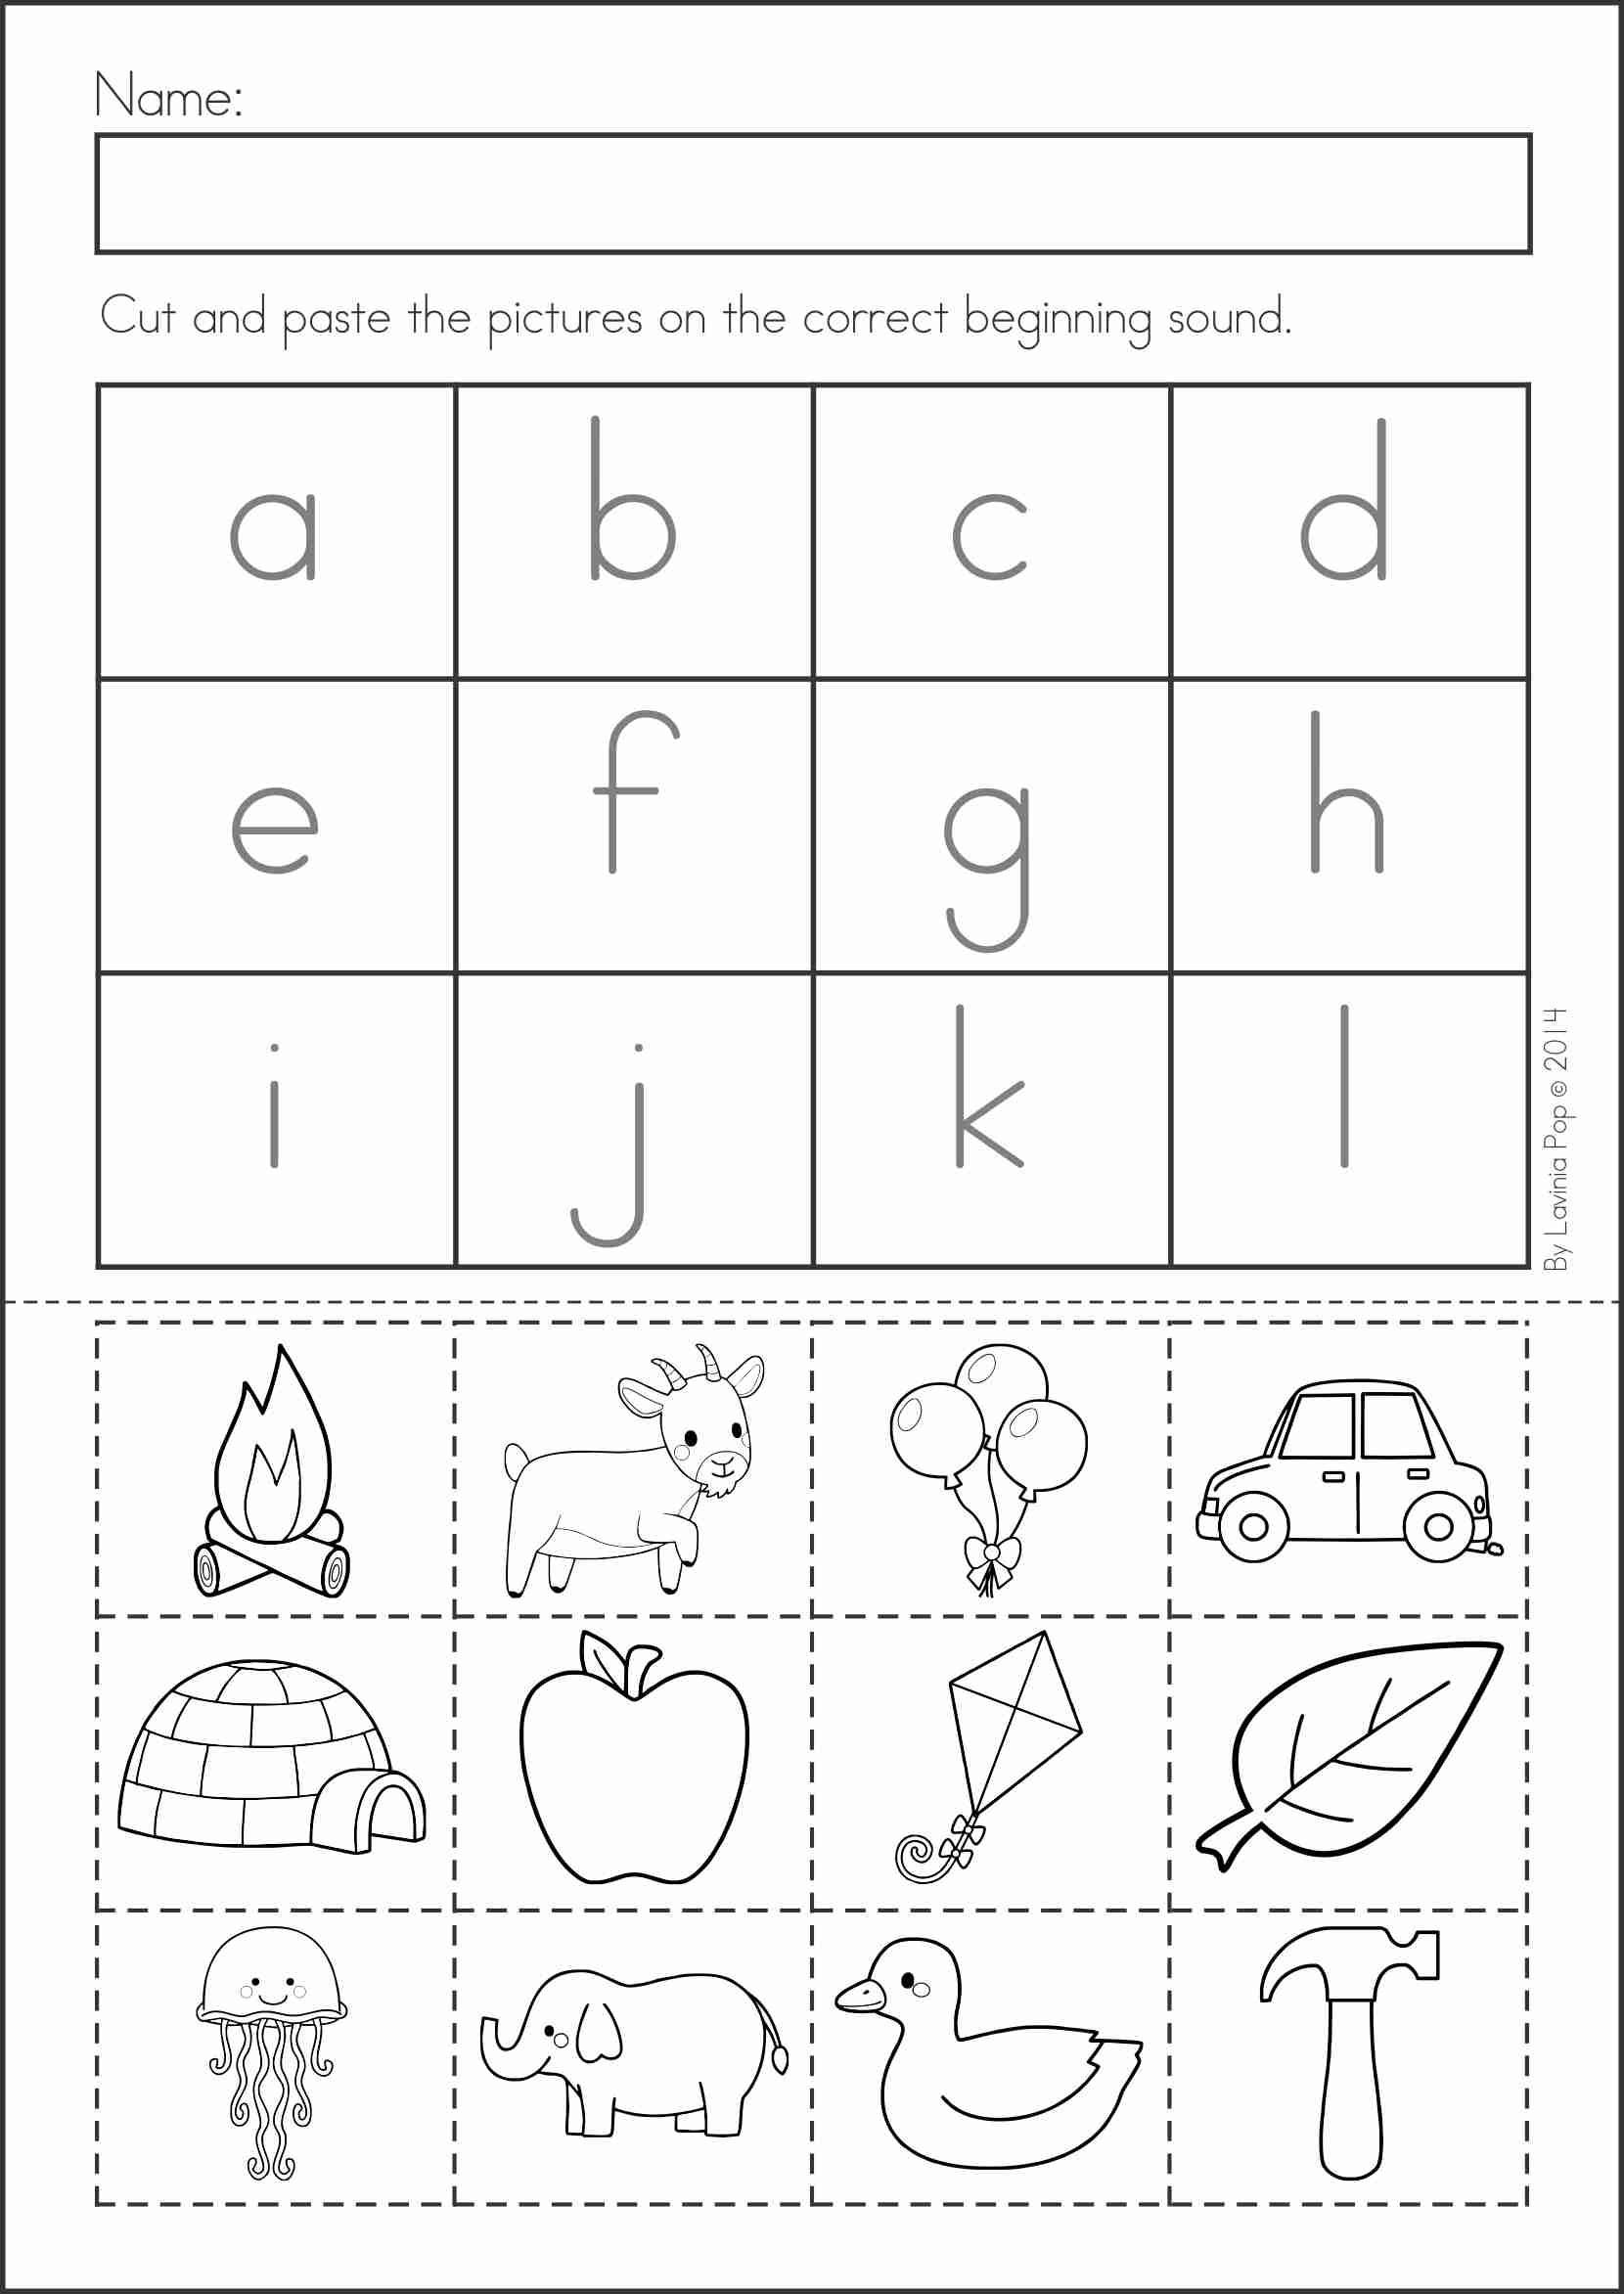 Free Worksheet Beginning Sounds Worksheet 10 images about beginning sounds on pinterest snowball literacy and miss kindergarten